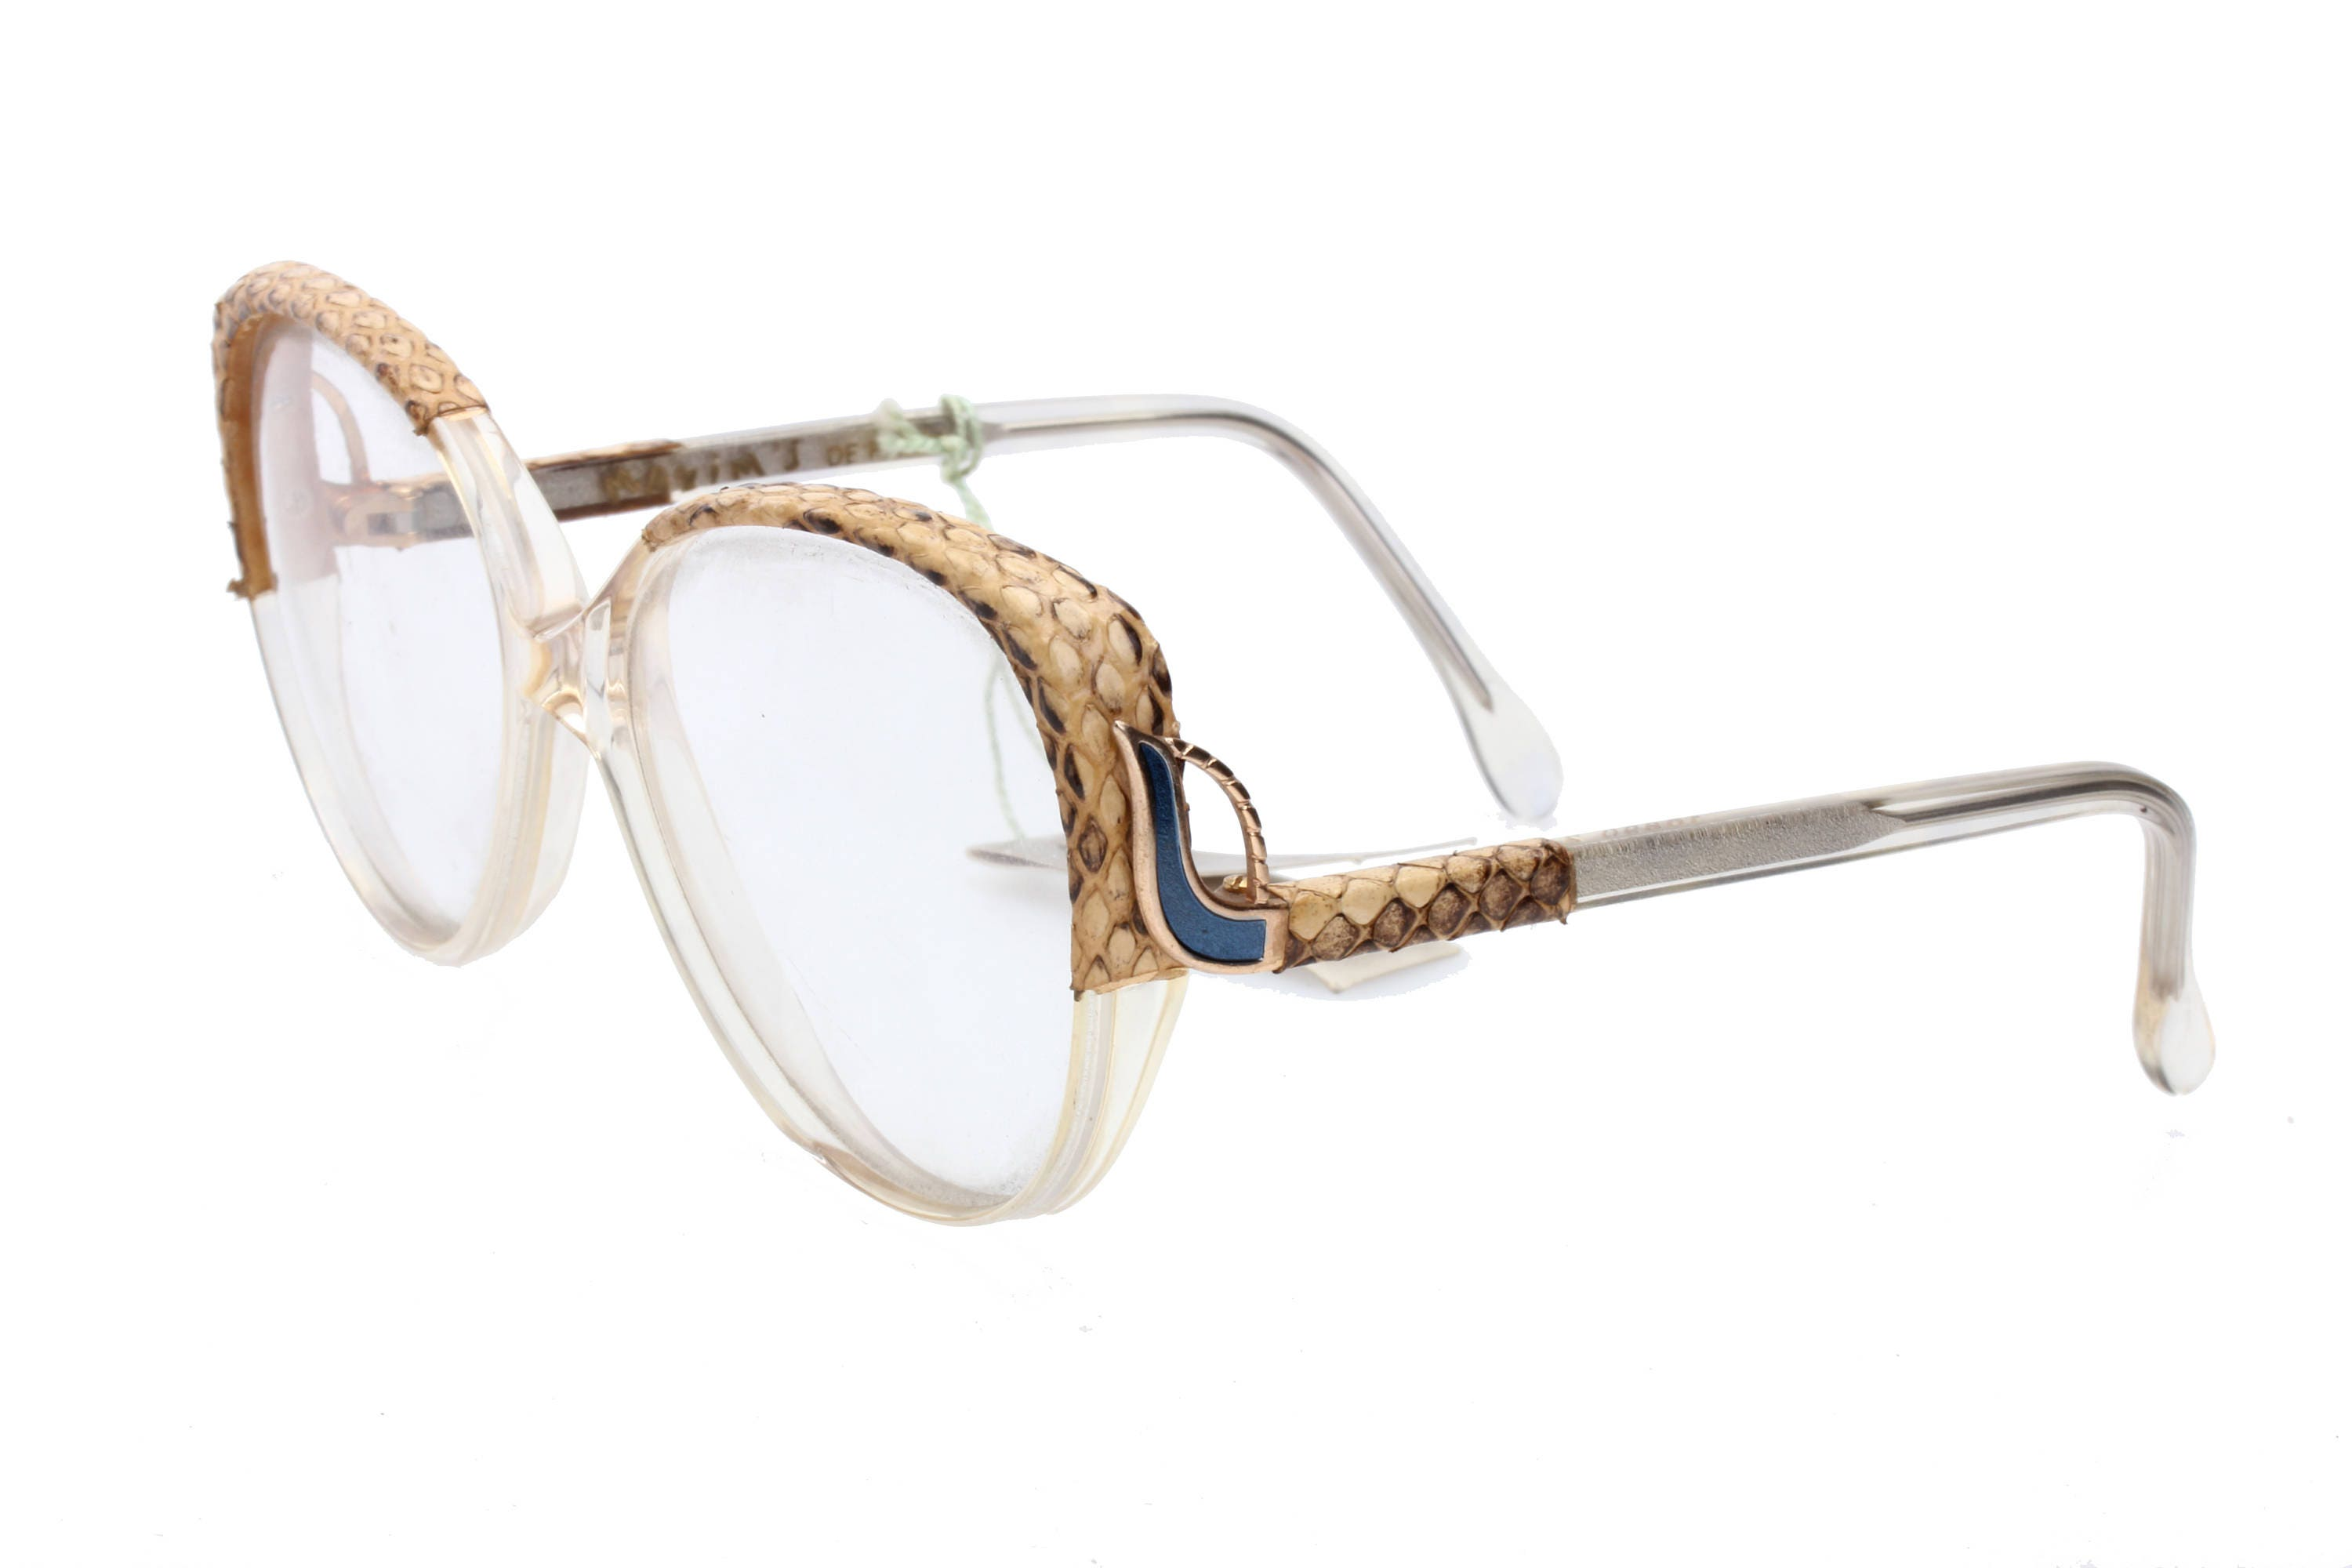 ab5264d1034 Maxim de Paris vintage clear oversized ladies eyeglasses frames with real  python leather inserts